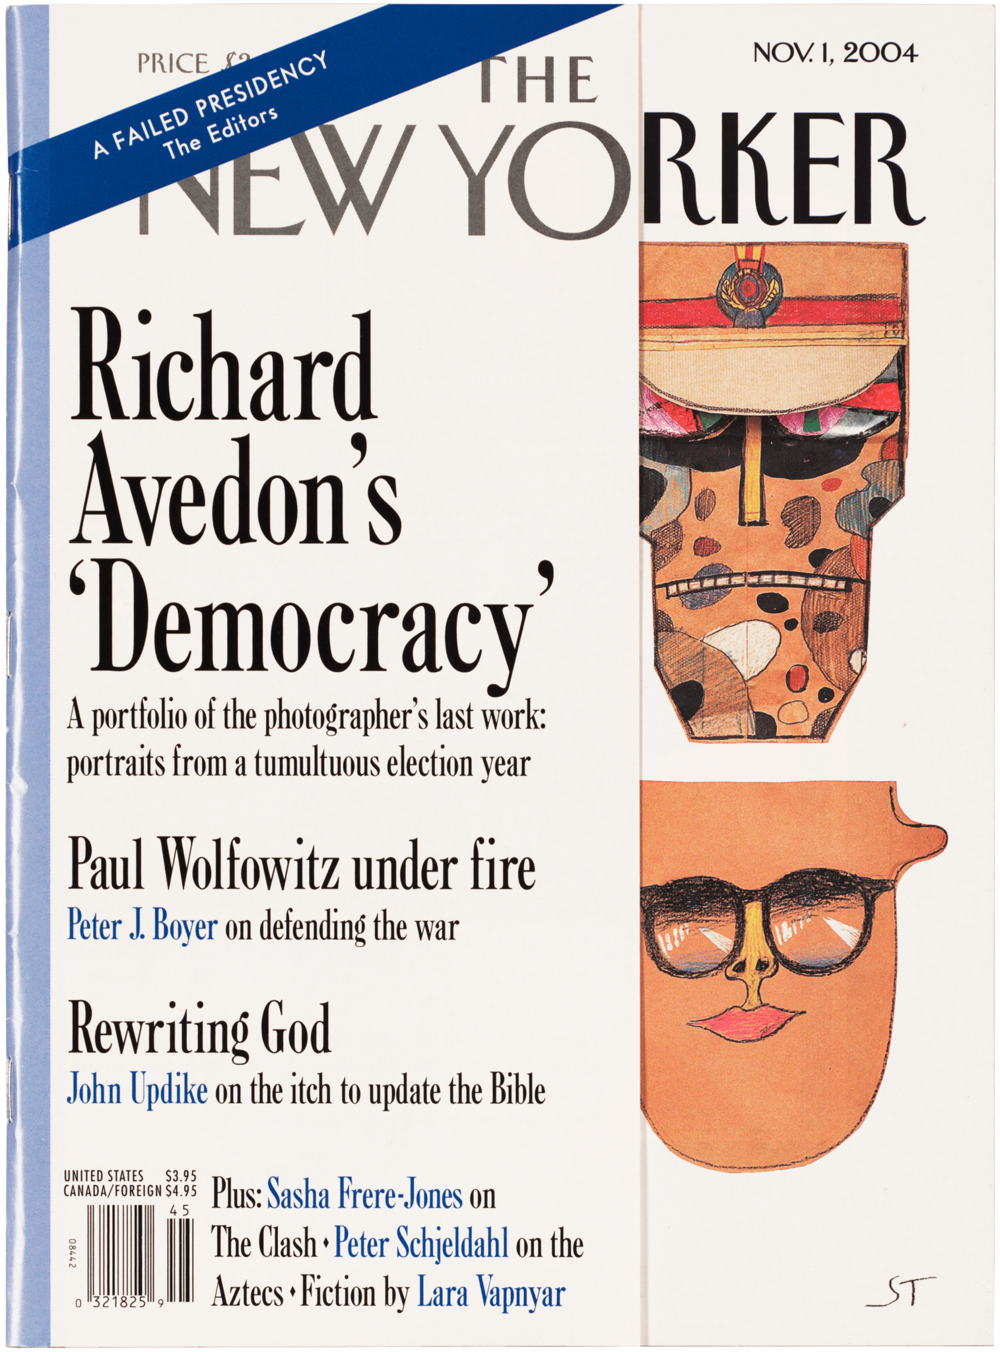 NewYorker-Nov1-2004-Cover_with-masks_2_cc2_resized.png